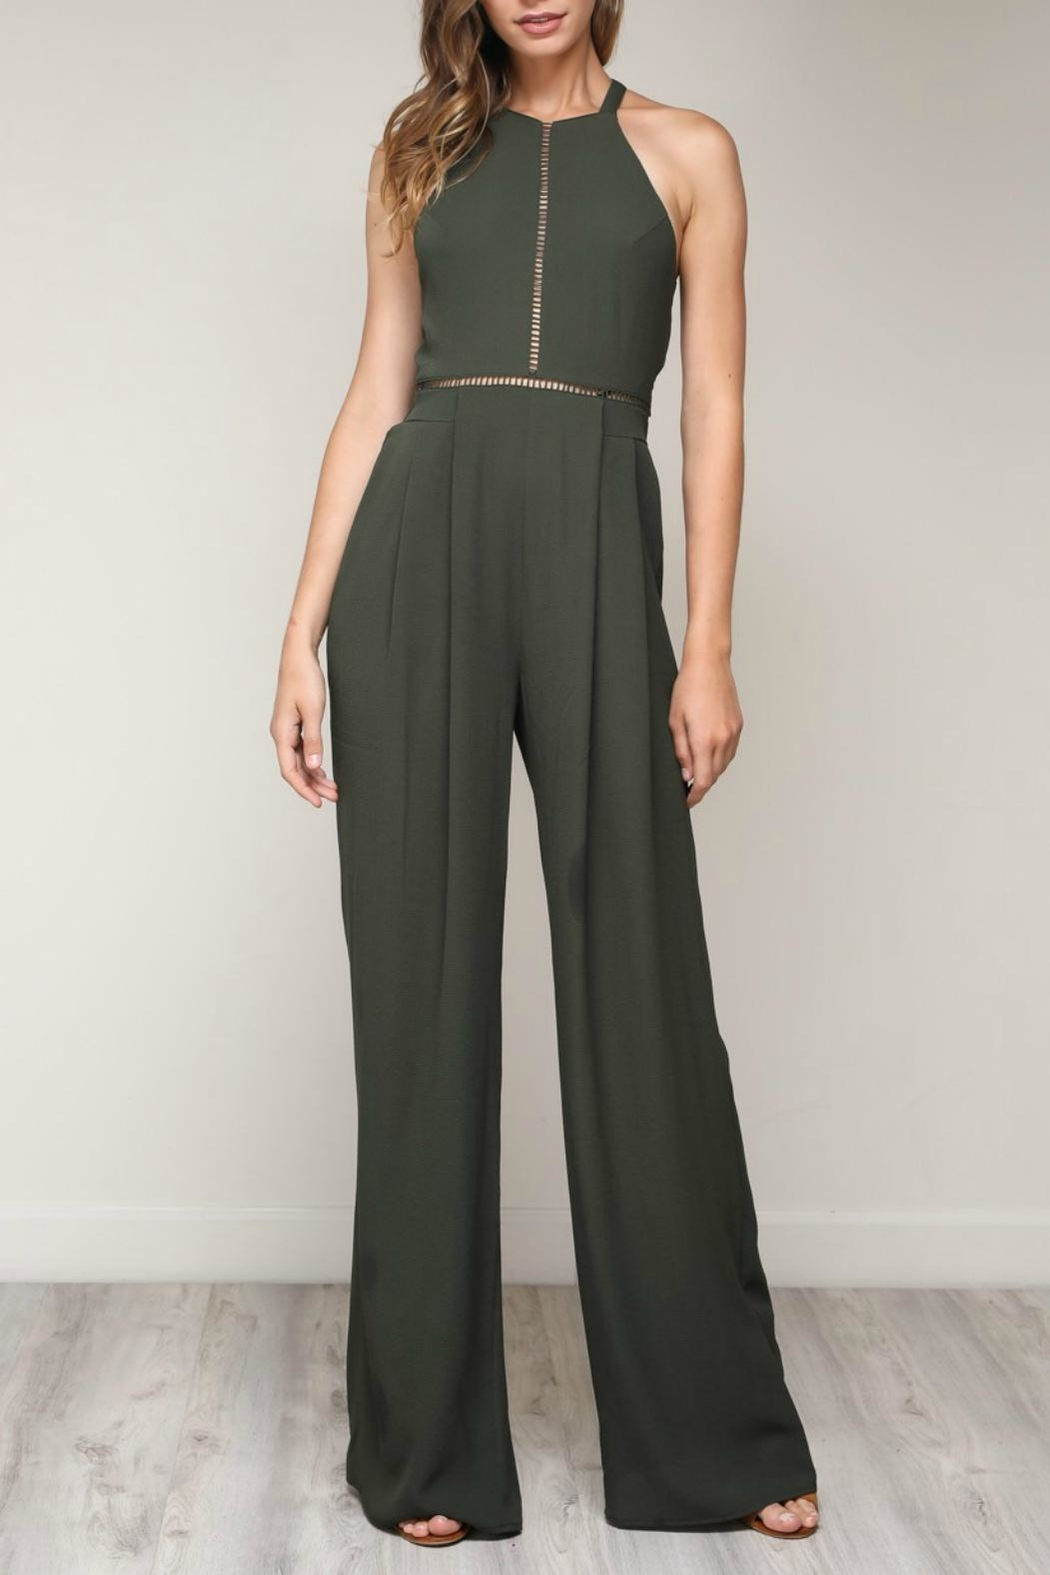 Pretty Little Things Bow Back Jumpsuit - Main Image